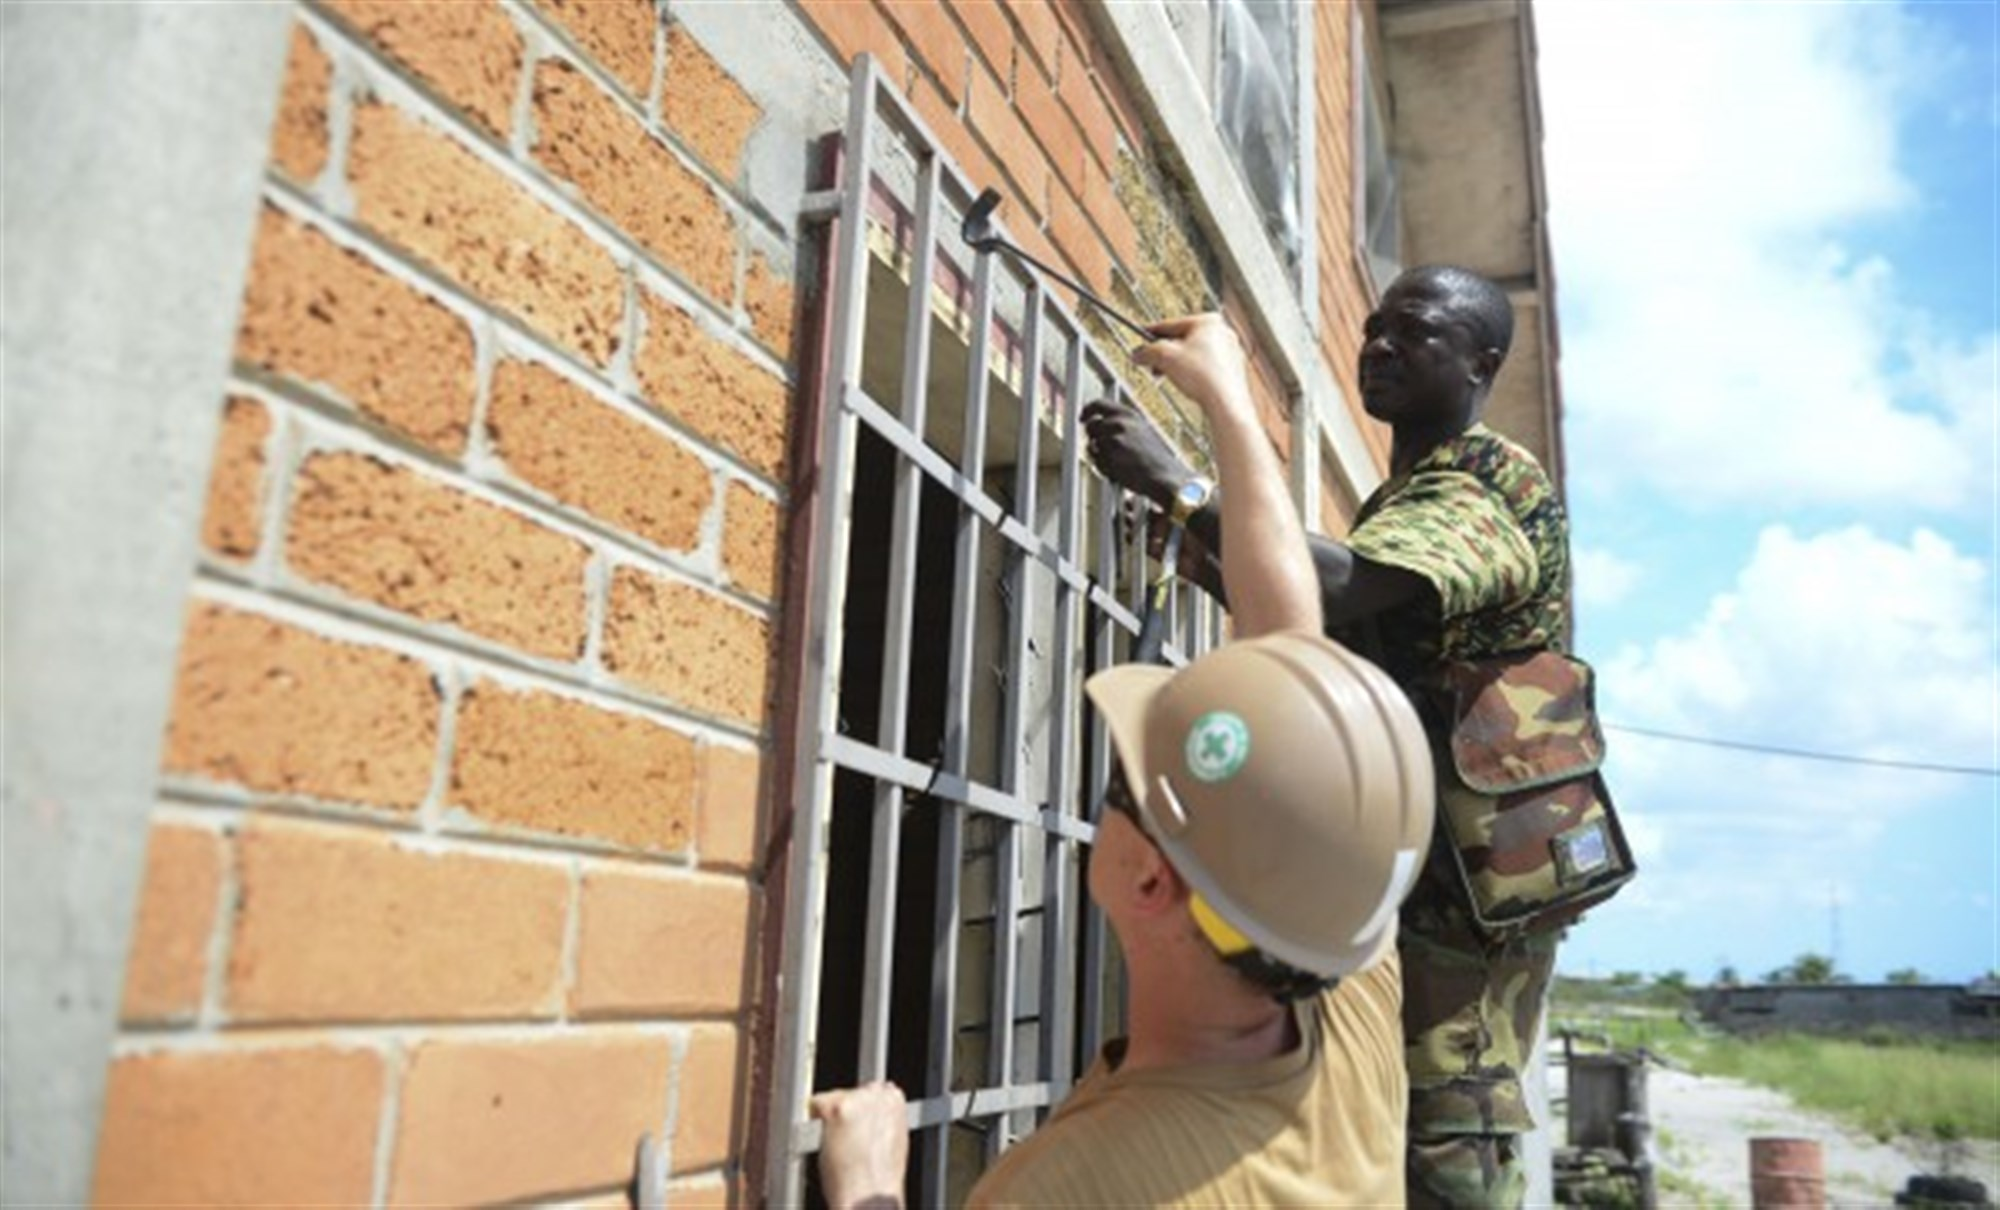 Seabees assigned to Navy Mobile Construction Battalion (NMCB) 11 and members of the Gabonese military work together to refurbish the Centre Esperance Mission orphanage in Port Gentile, Gabon, April 8, 2015. Embarked military and civilian mariners assigned to the joint high-speed vessel USNS Spearhead (JHSV 1), Seabees from NMCB 11, members of the Gabonese military worked together to help renovate the orphanage. Spearhead is on a scheduled deployment to the U.S. 6th Fleet area of operations in support of the international collaborative capacity-building program Africa Partnership Station.